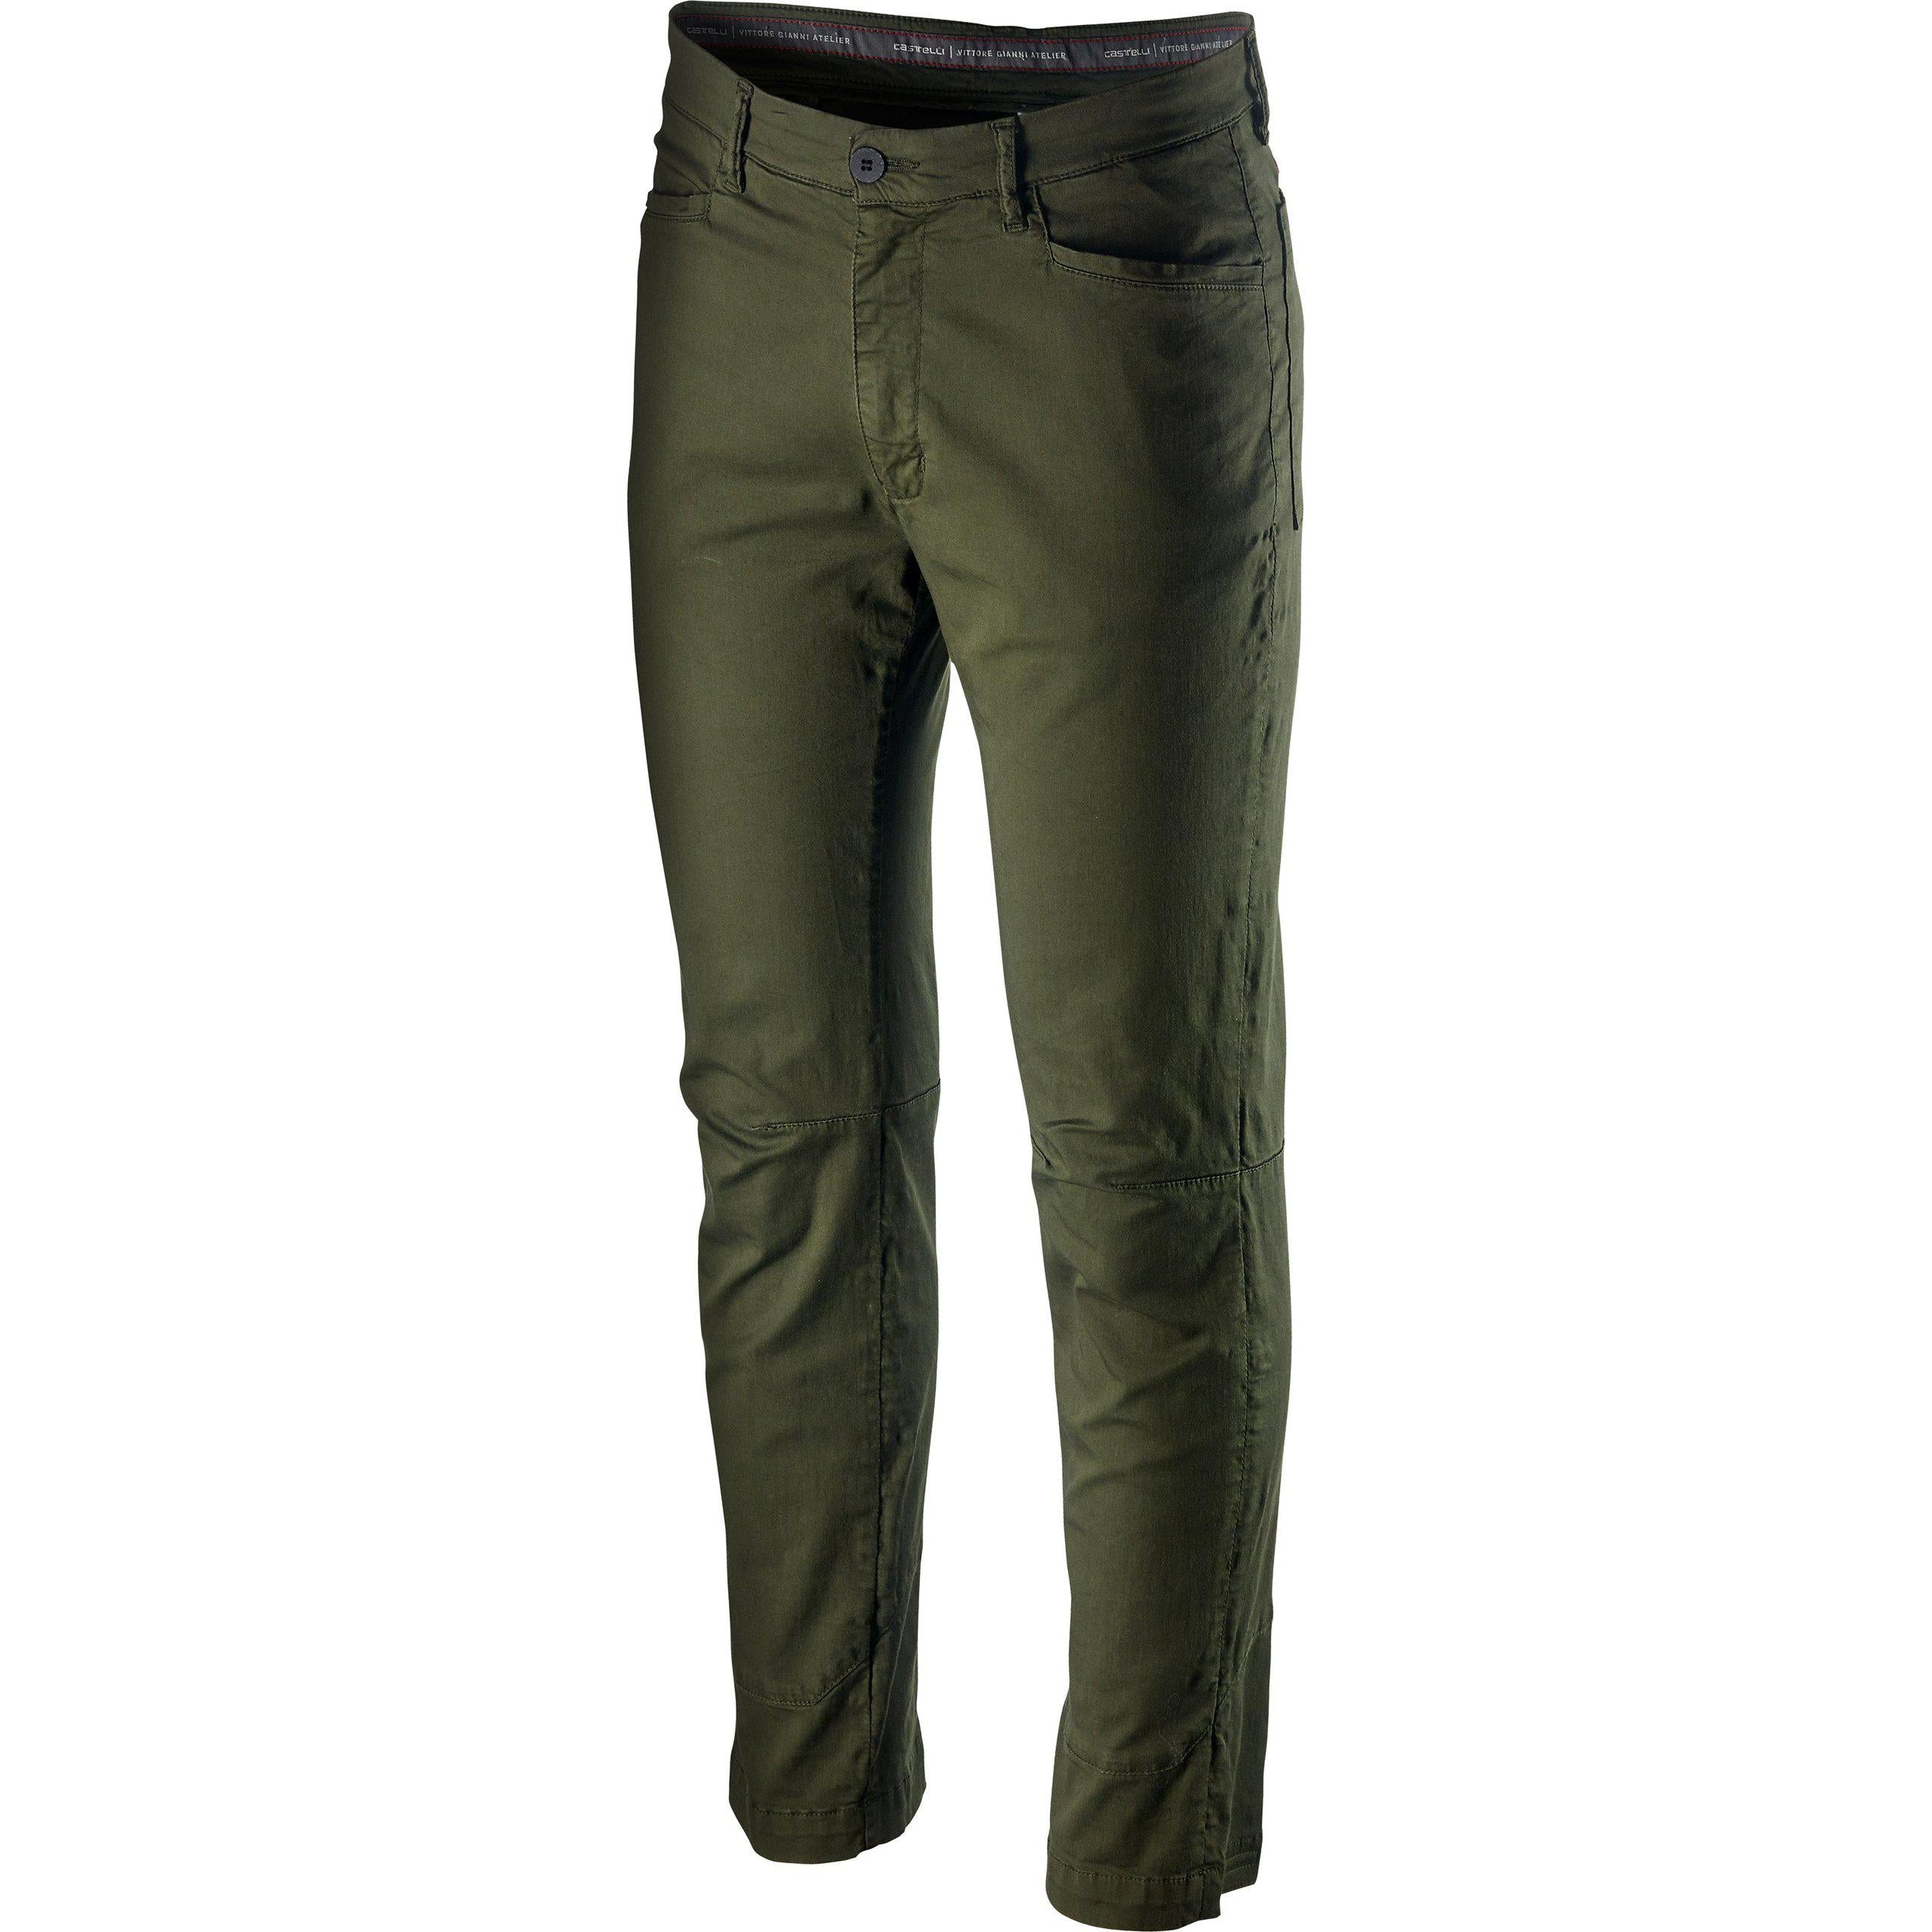 Castelli-Castelli VG 5 Pocket Pant-Military Green-XS-CS201100751-saddleback-elite-performance-cycling